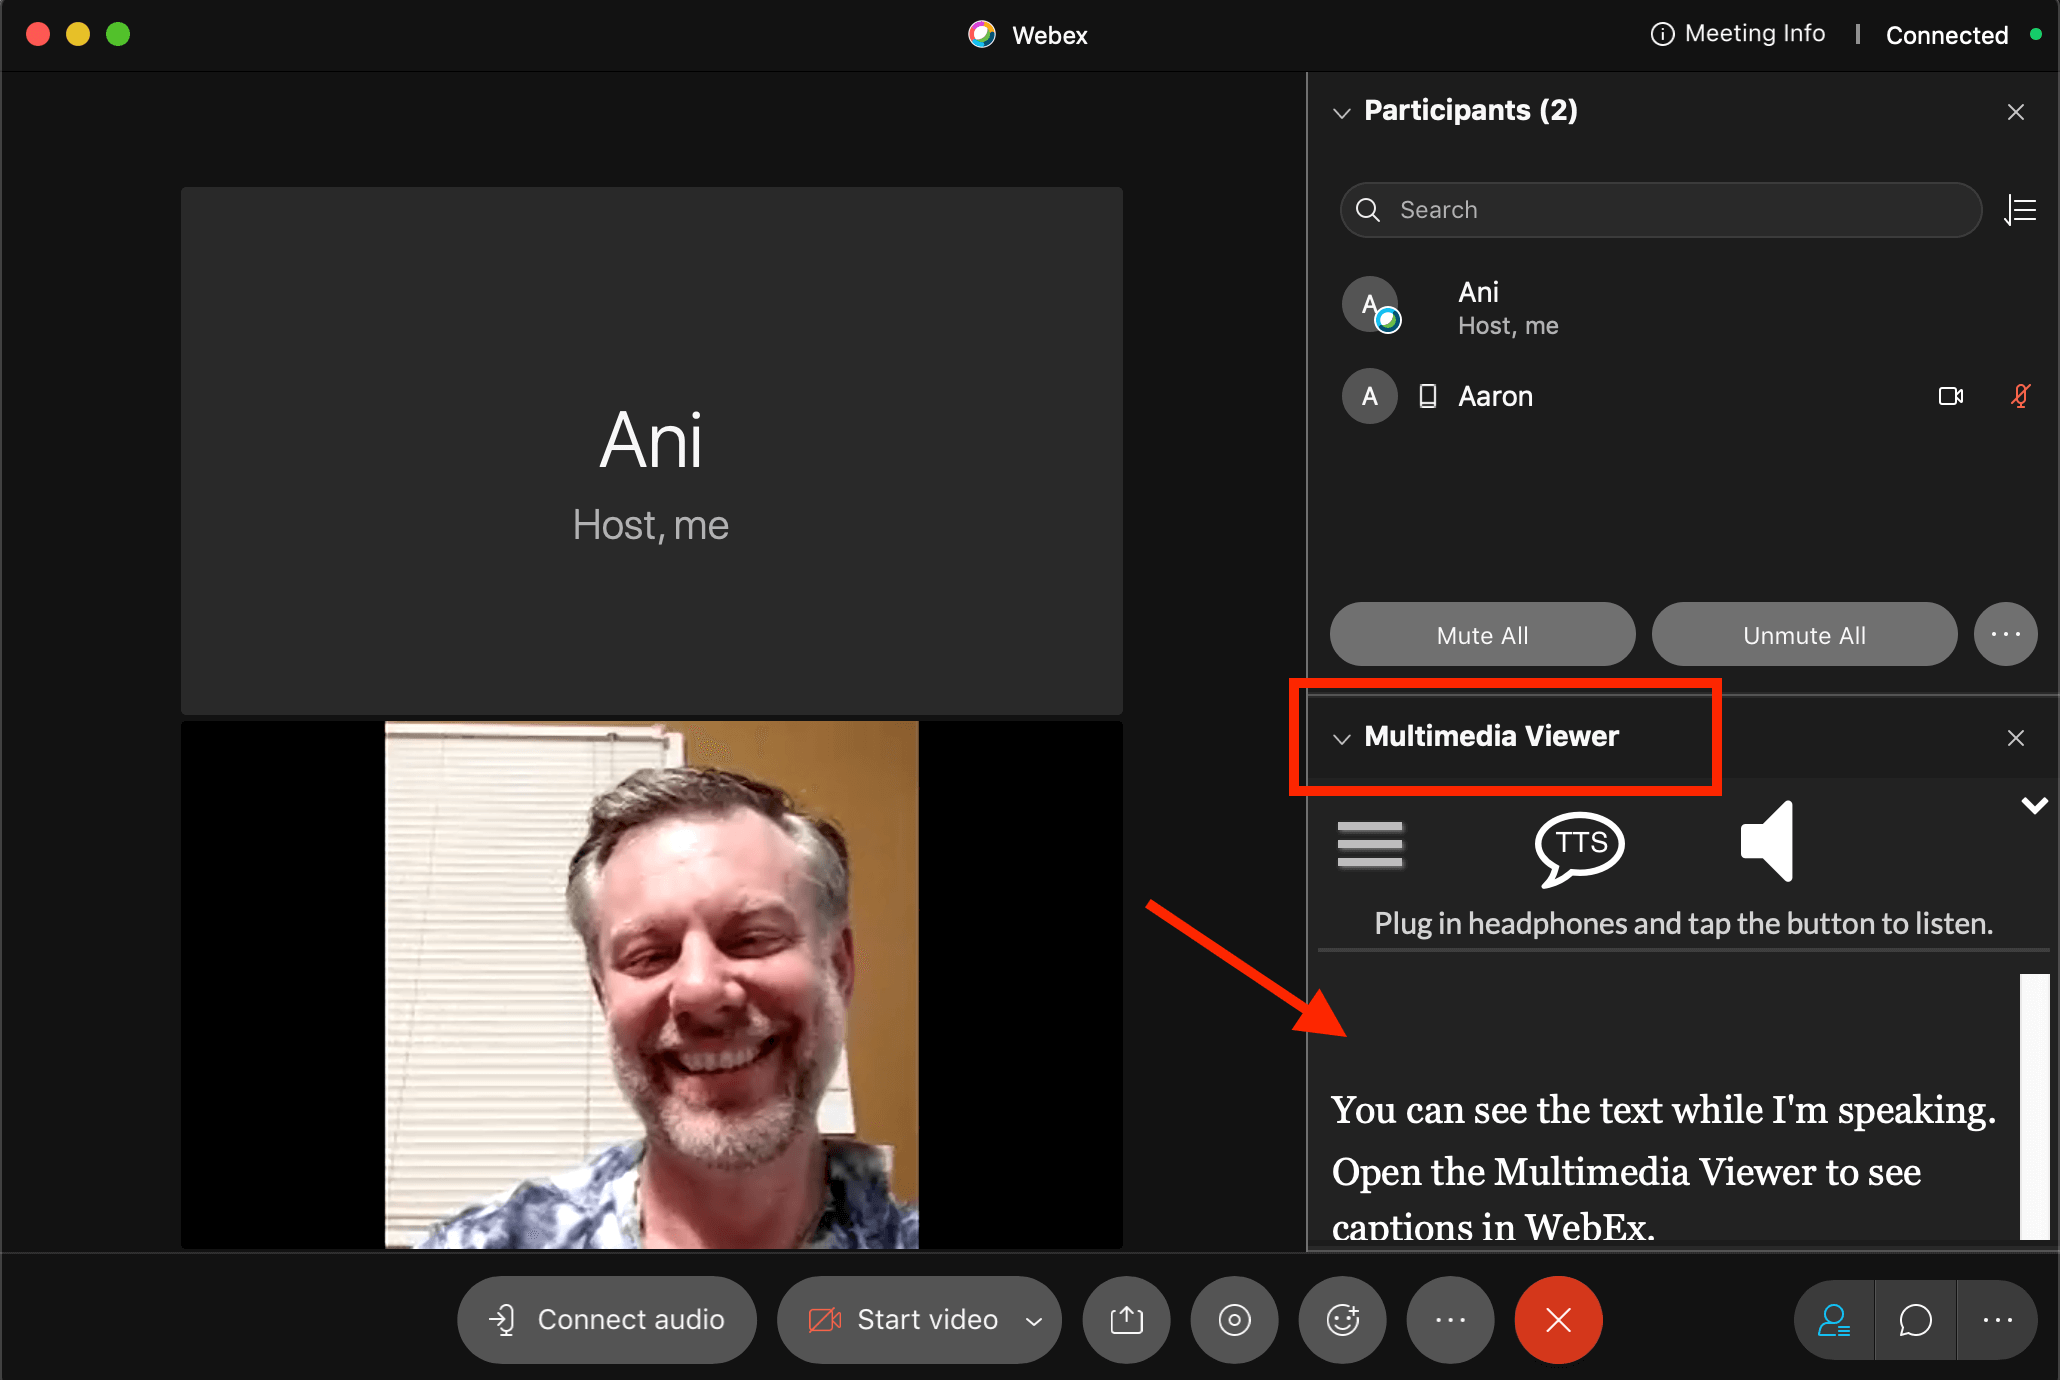 WebEx live captions by spf.io as seen by host